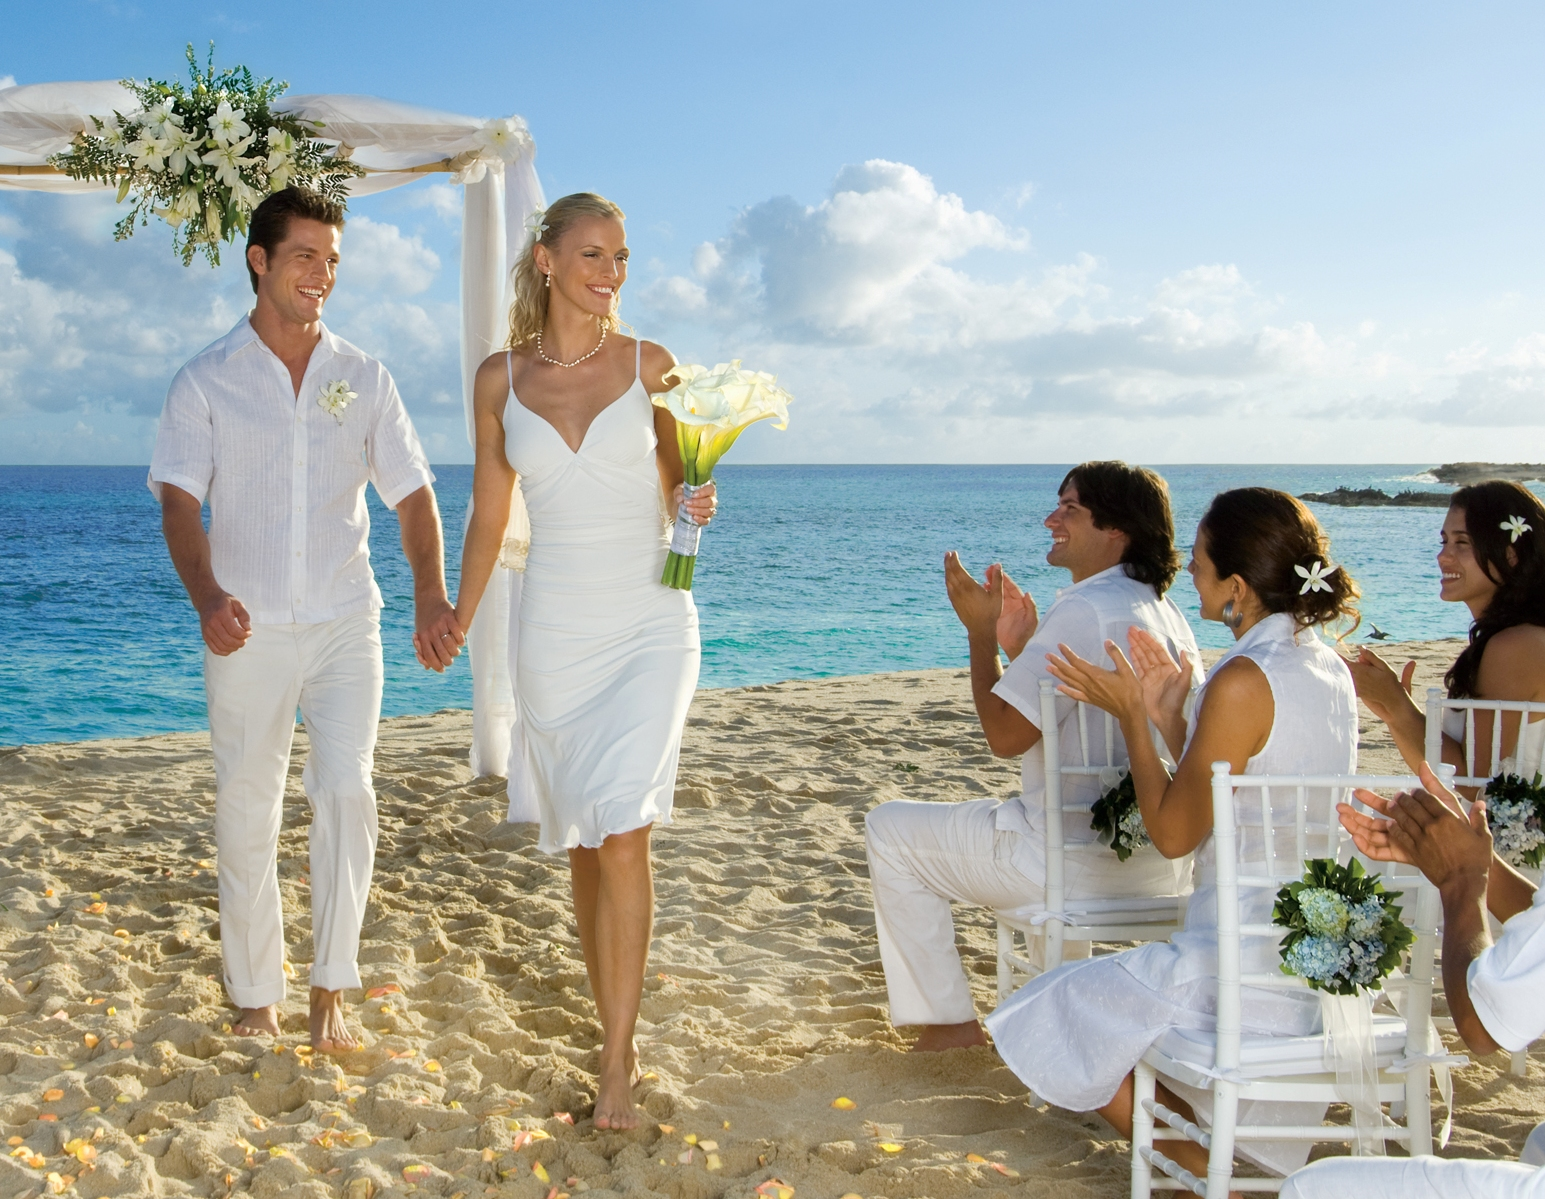 Weddings in Cancun and Riviera Maya